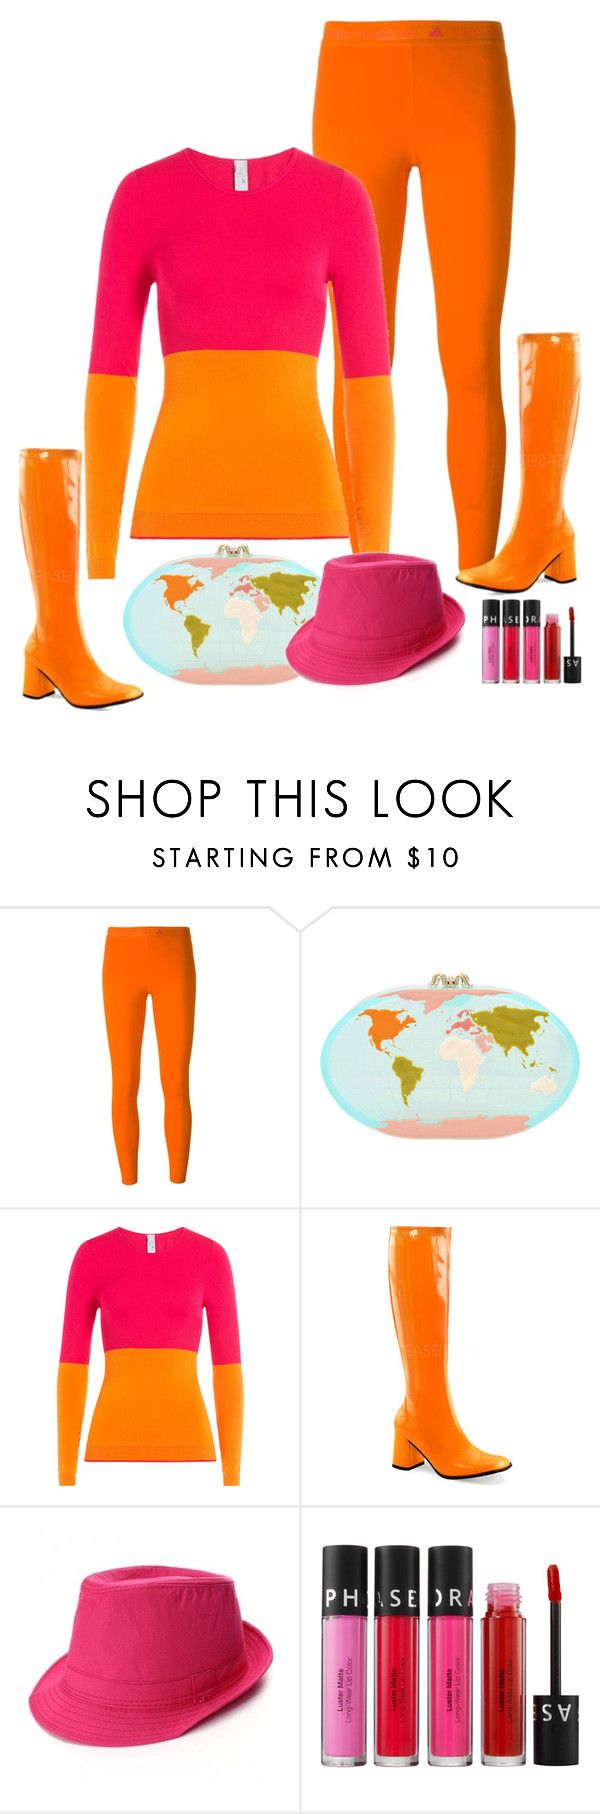 """""""Charlotte Olympia Columbus Clutch"""" by ann-kelley14 on Polyvore featuring adidas, Charlotte Olympia, Funtasma and Sephora Collection"""